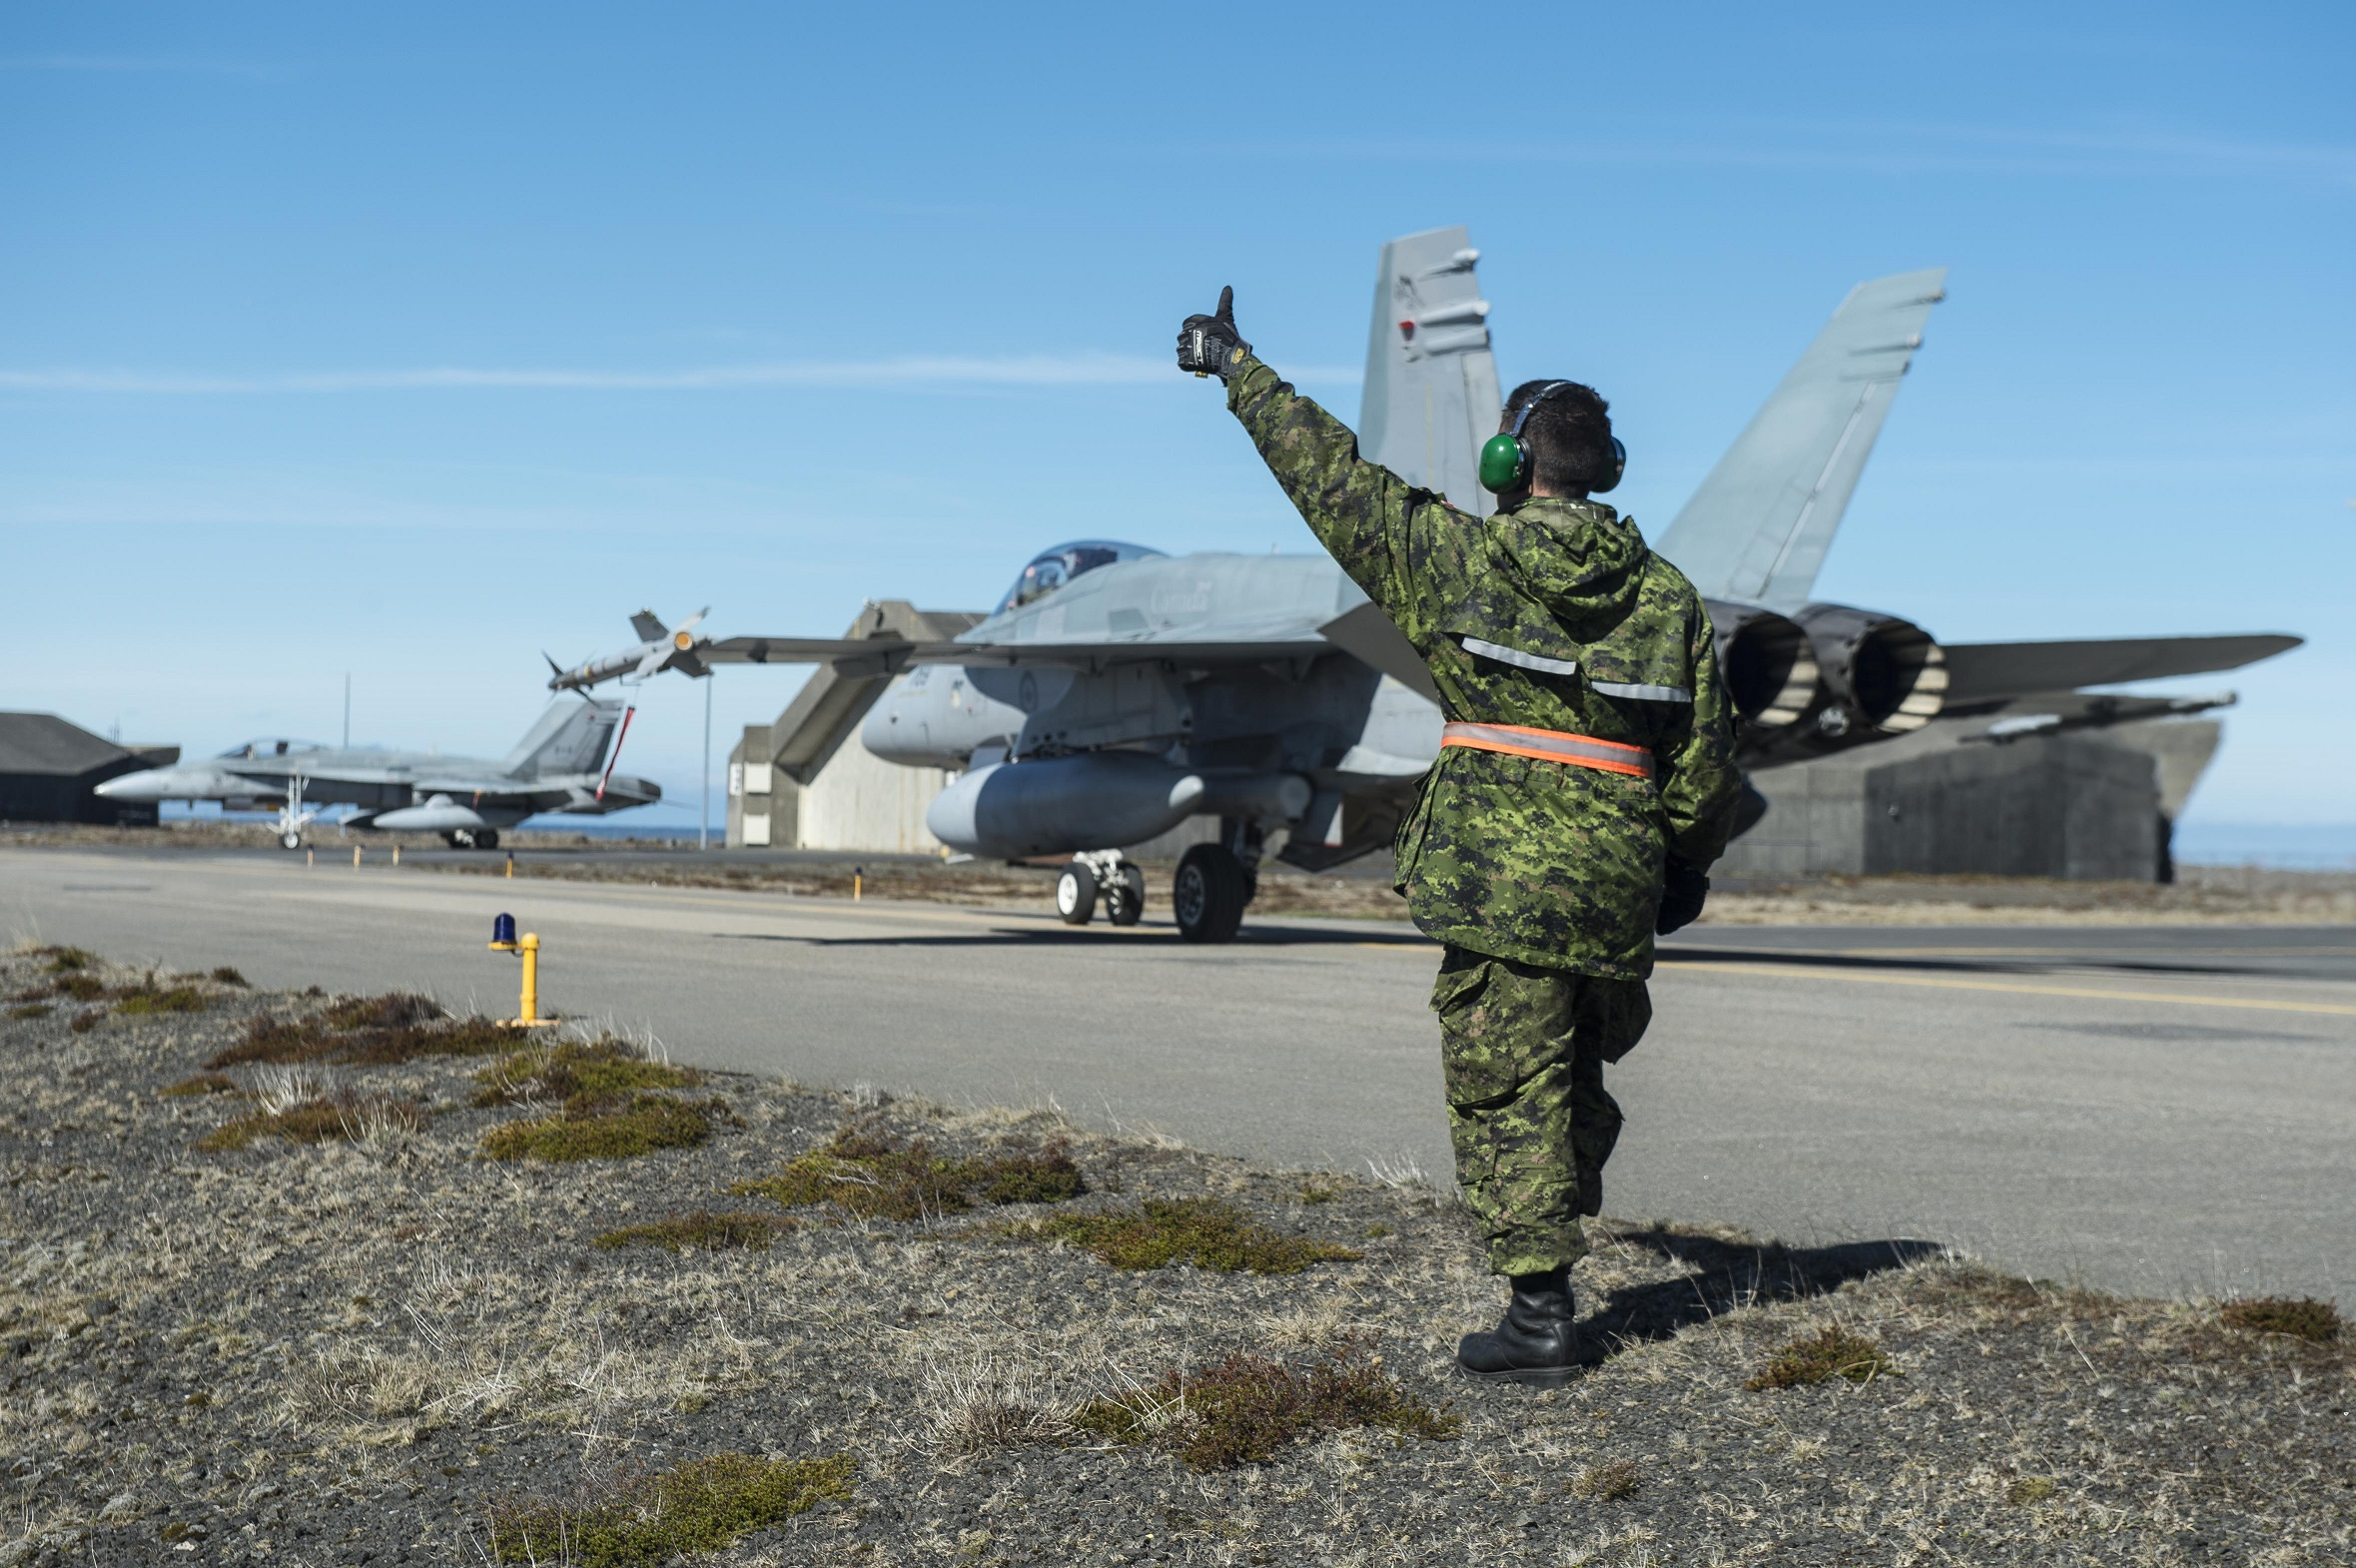 19 May, 2017. Weapons technician, Corporal Chad Doley-Bourger, signals that the CF-188 is disarmed and ready to return to the hangar during op REASURANCE, Keflavik, Iceland on 19 May, 2017. (Photo: Cpl Gary Calvé. Image technician ATF-Iceland)